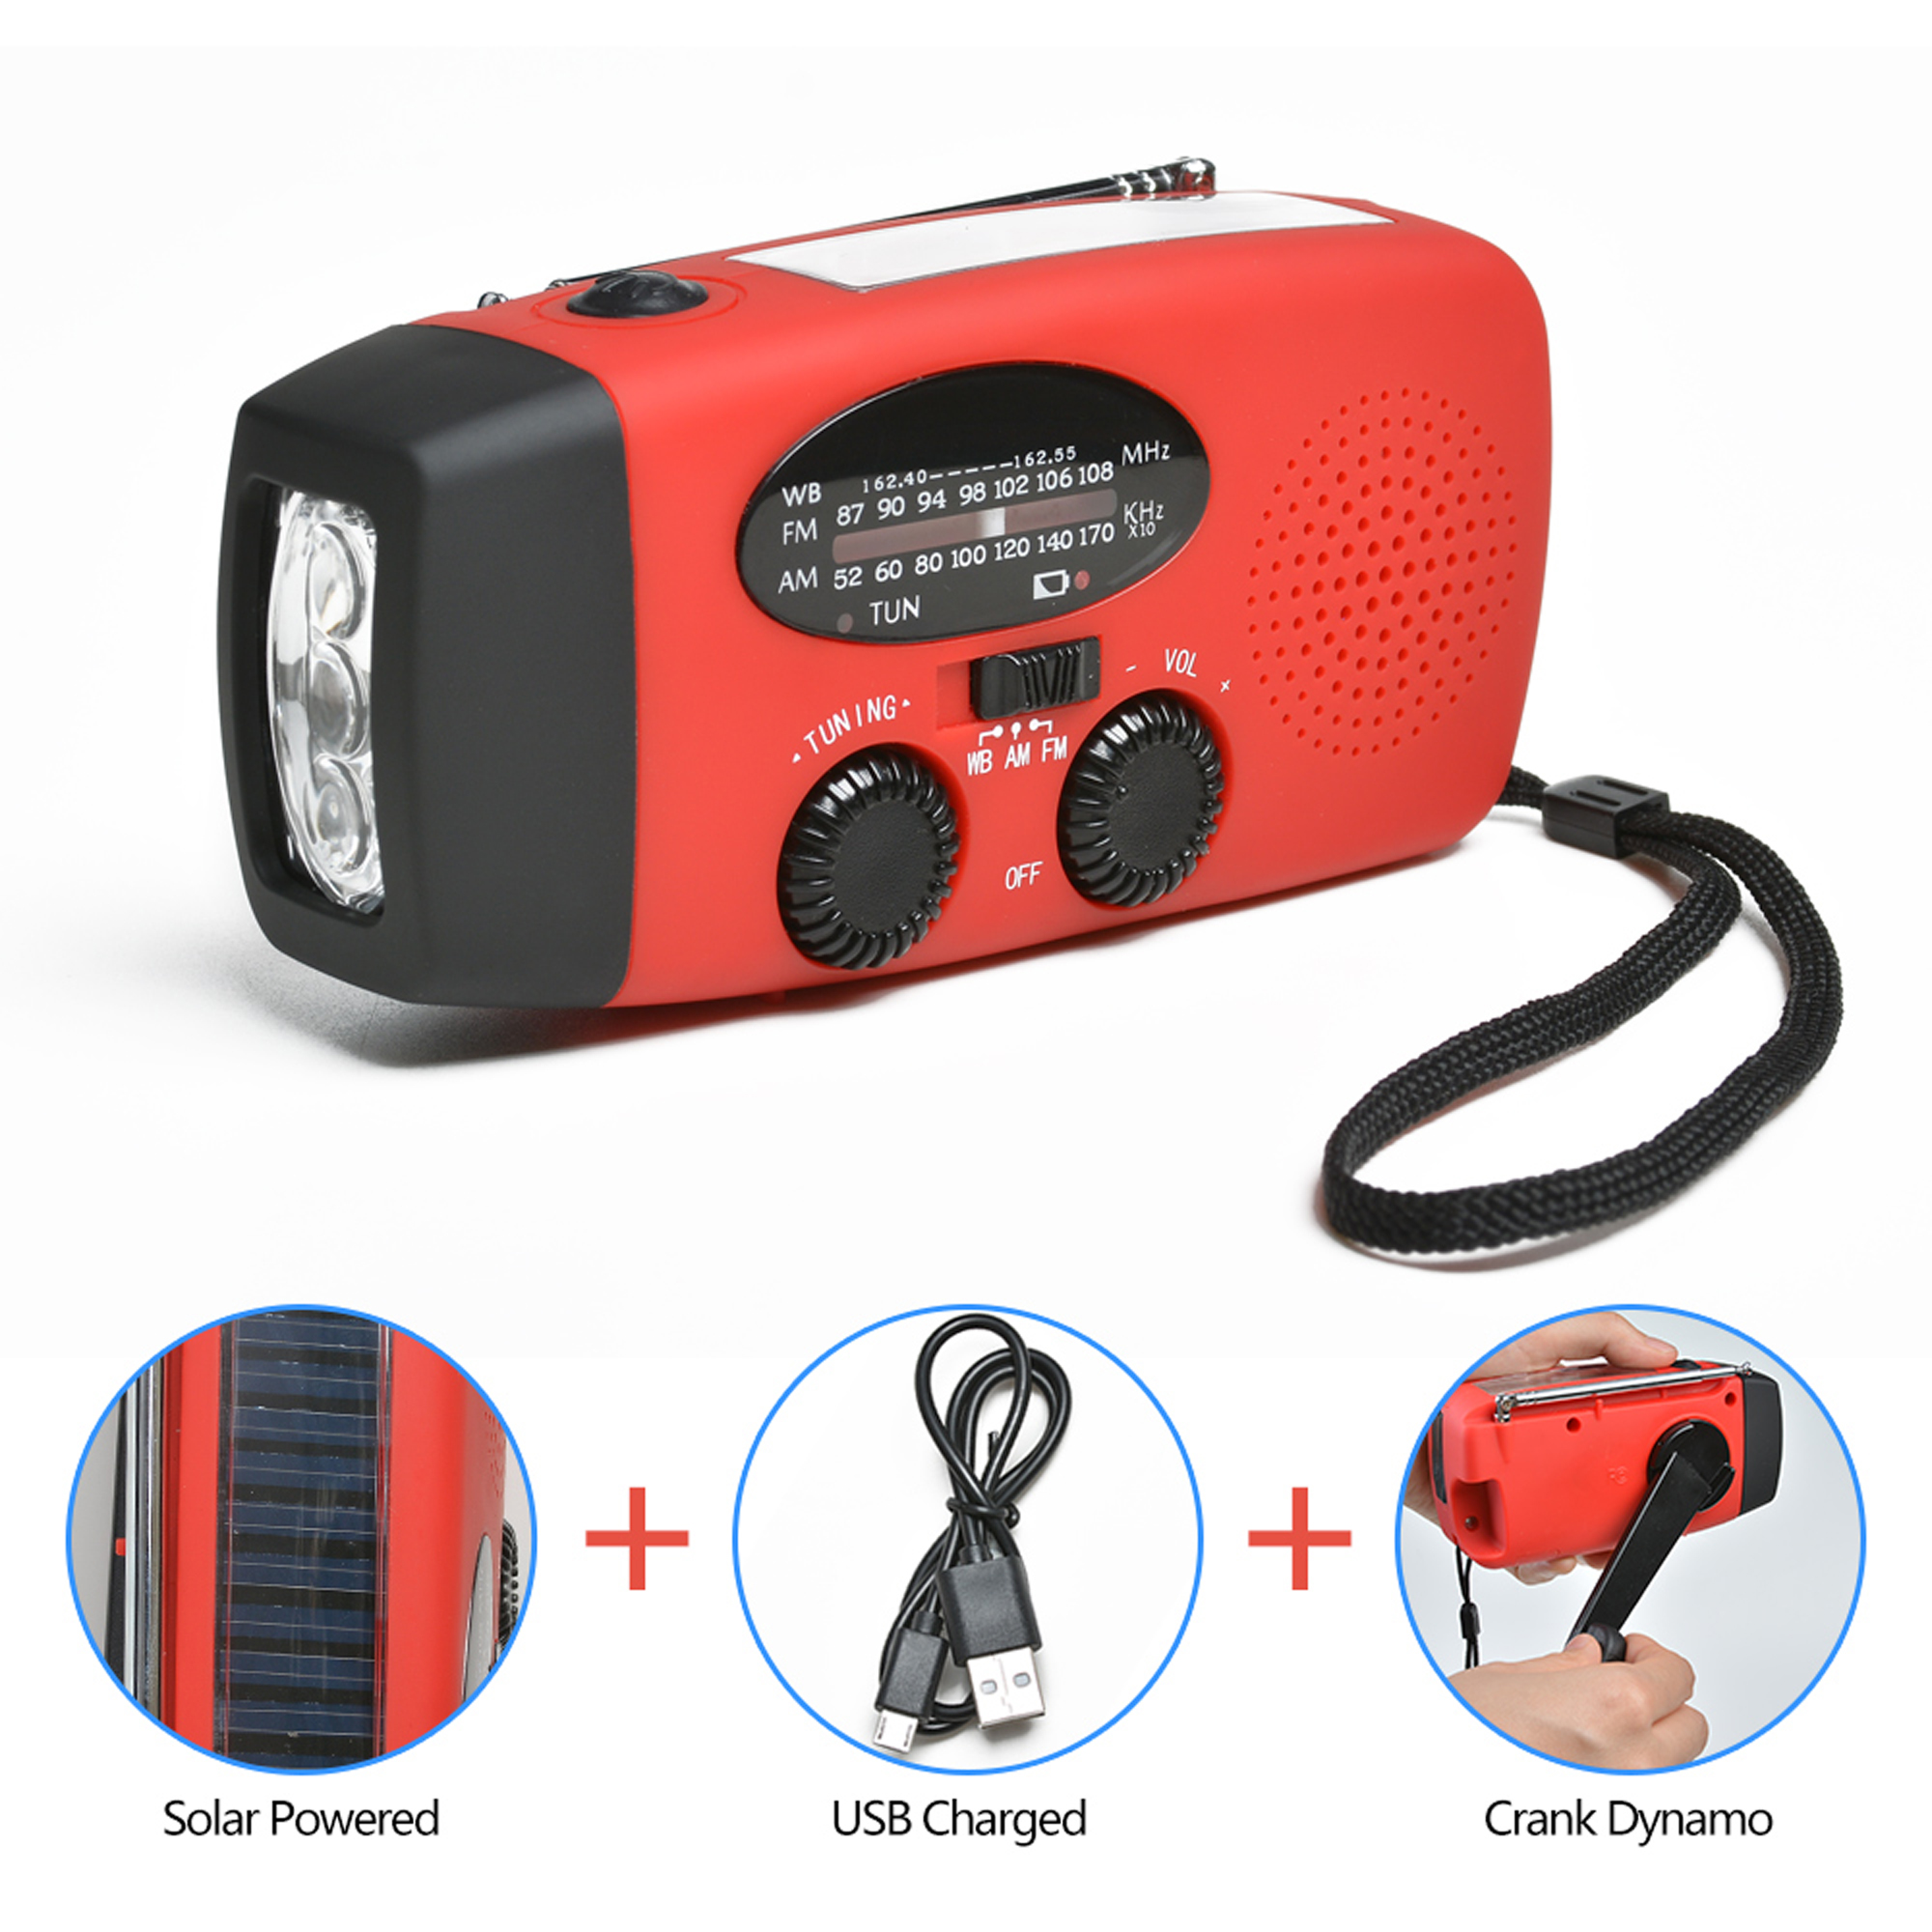 ODOLAND portable dynamo emergency solar hand crank radio LED Flashlight Smart Phone Charger by